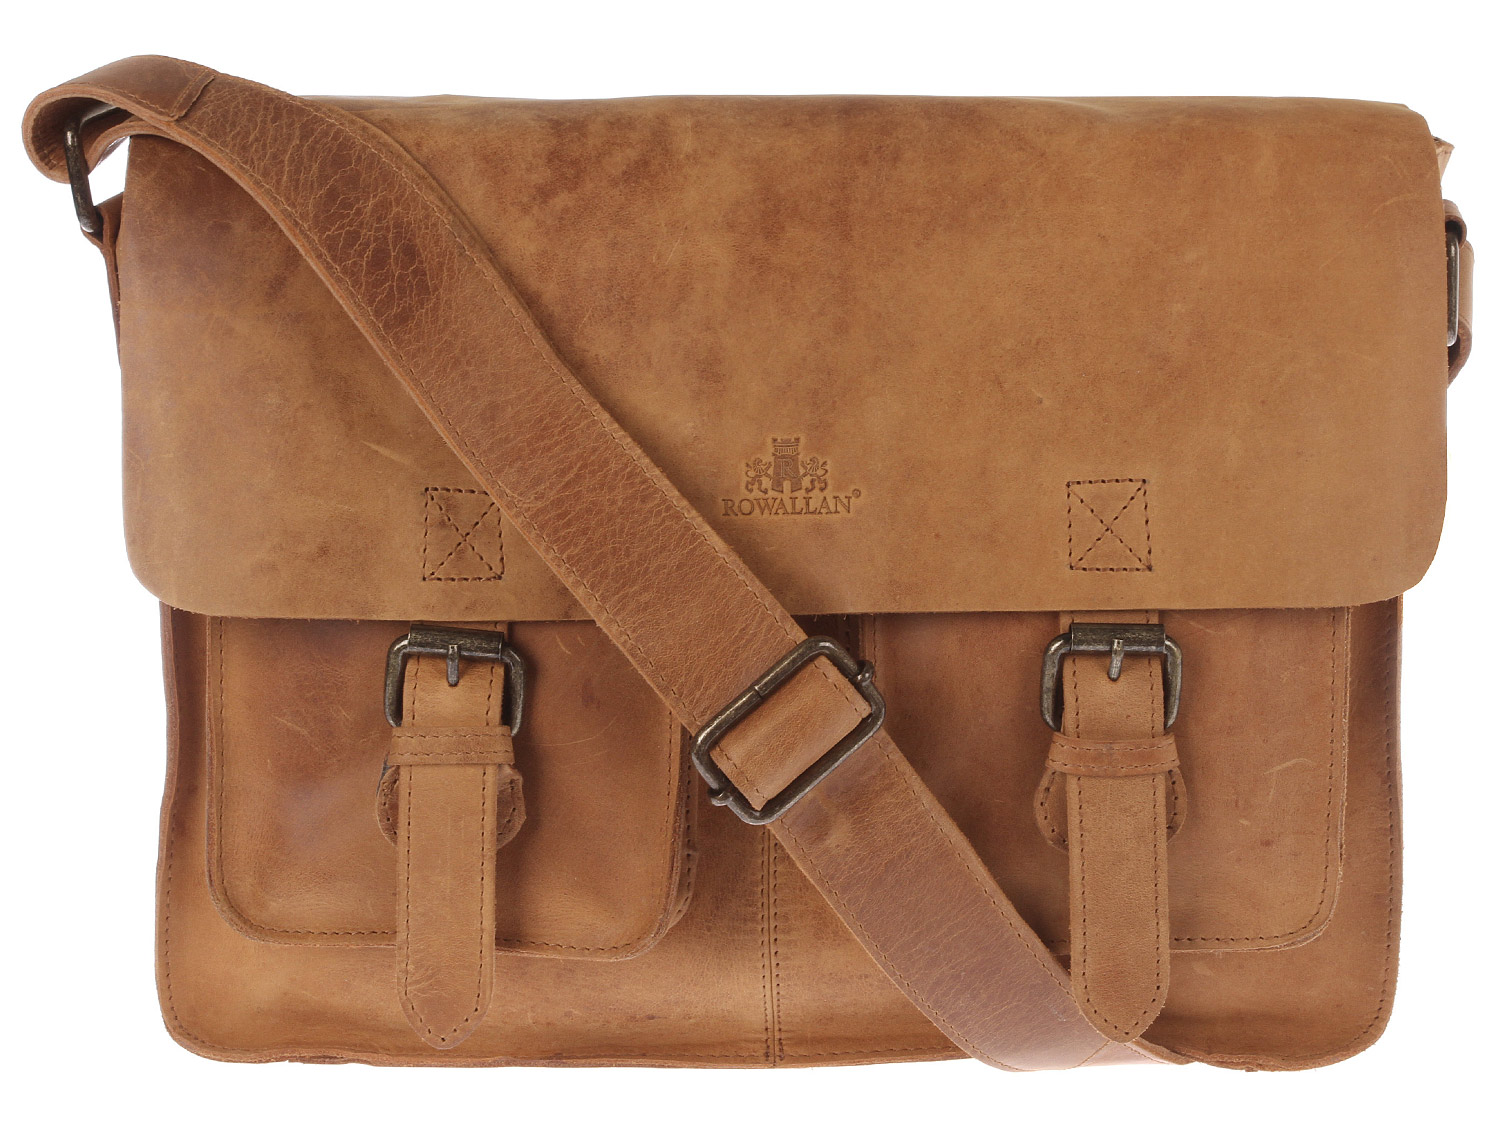 Rowallan - Scotland 'Denver' Vintage Cognac Leather Satchel 31-7956-COGNAC | pureluxuries.com